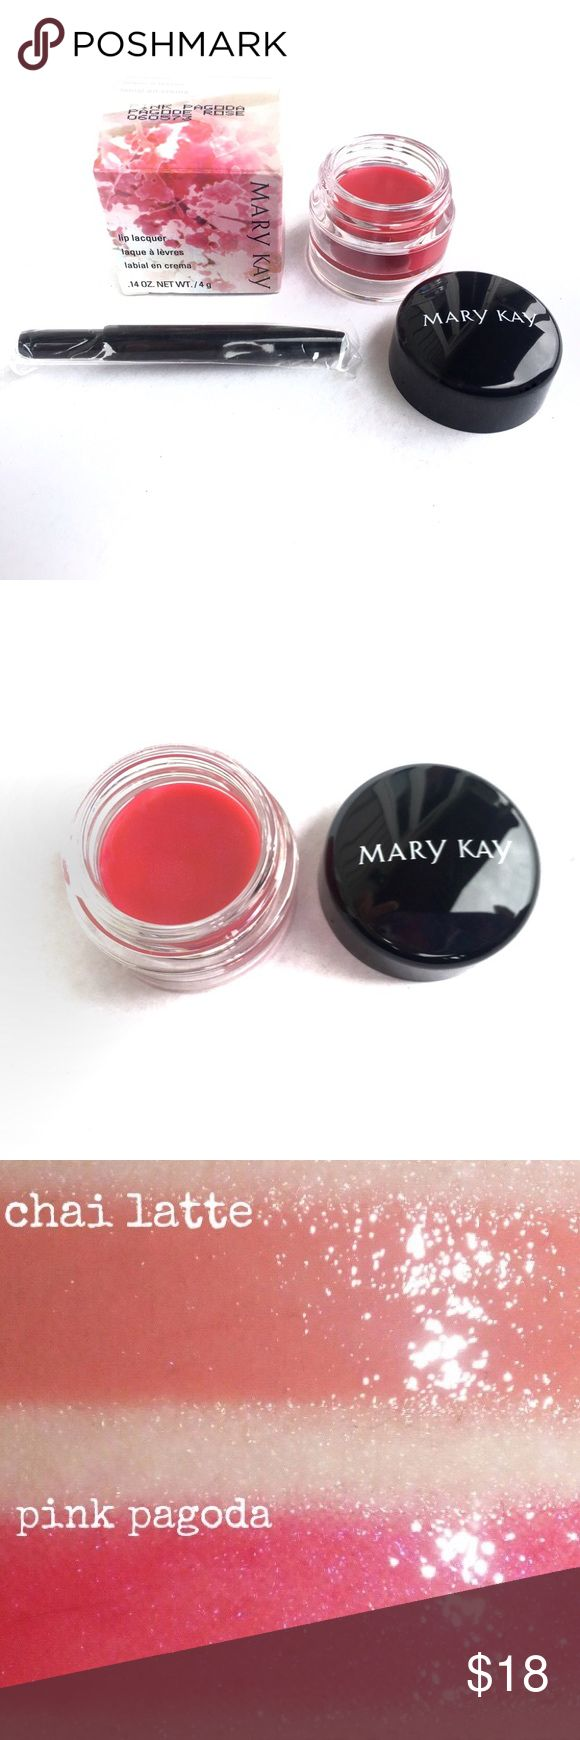 Mary kay lip lacquer pink pagoda mary kay lip lacquer with mini retractable